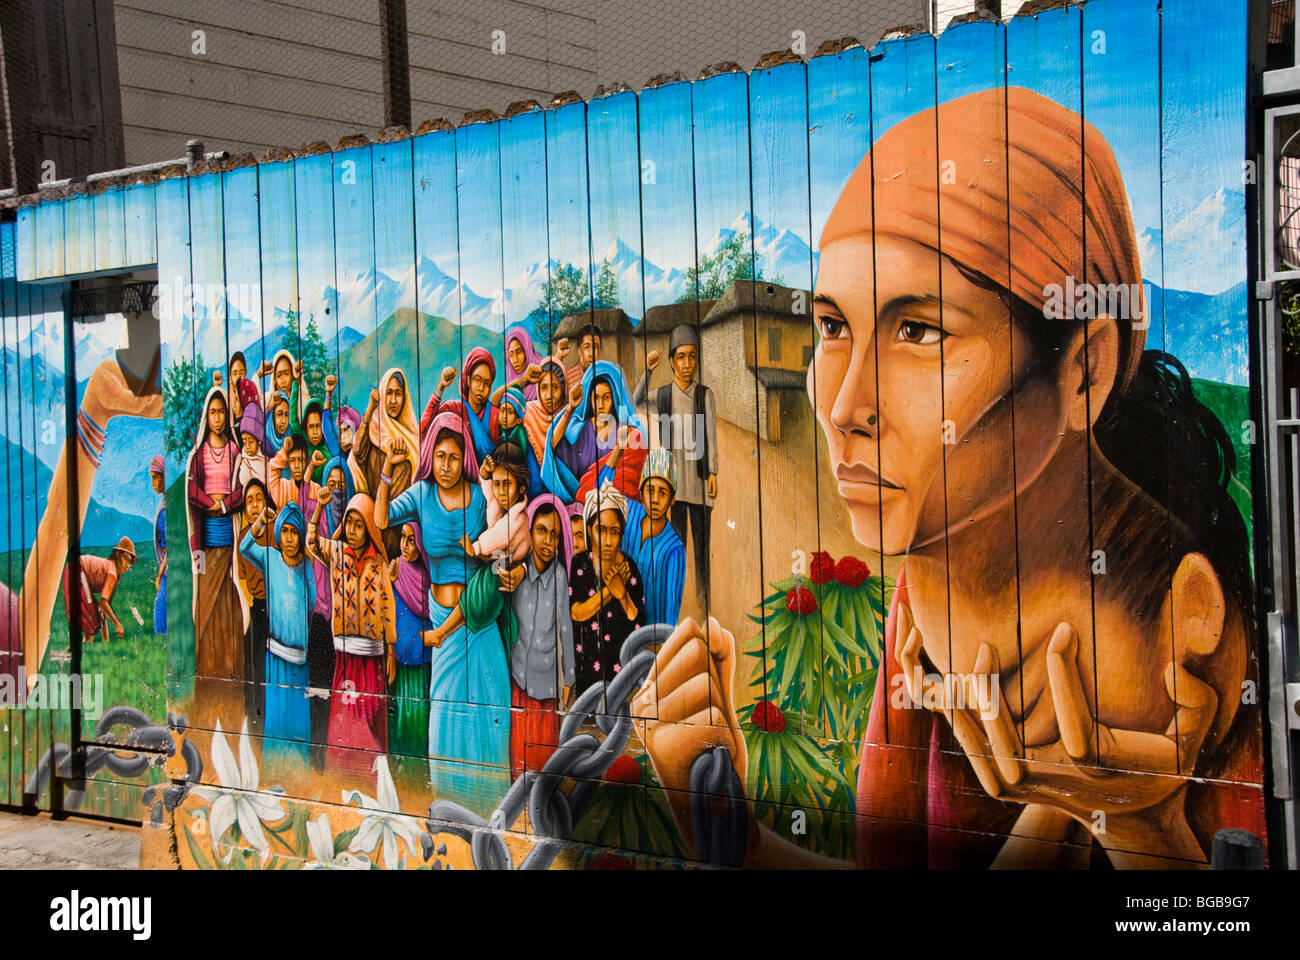 California: San Francisco. Mission district murals, Hispanic themes. Photo copyright Lee Foster. Photo # 26-casanf78544. - Stock Image